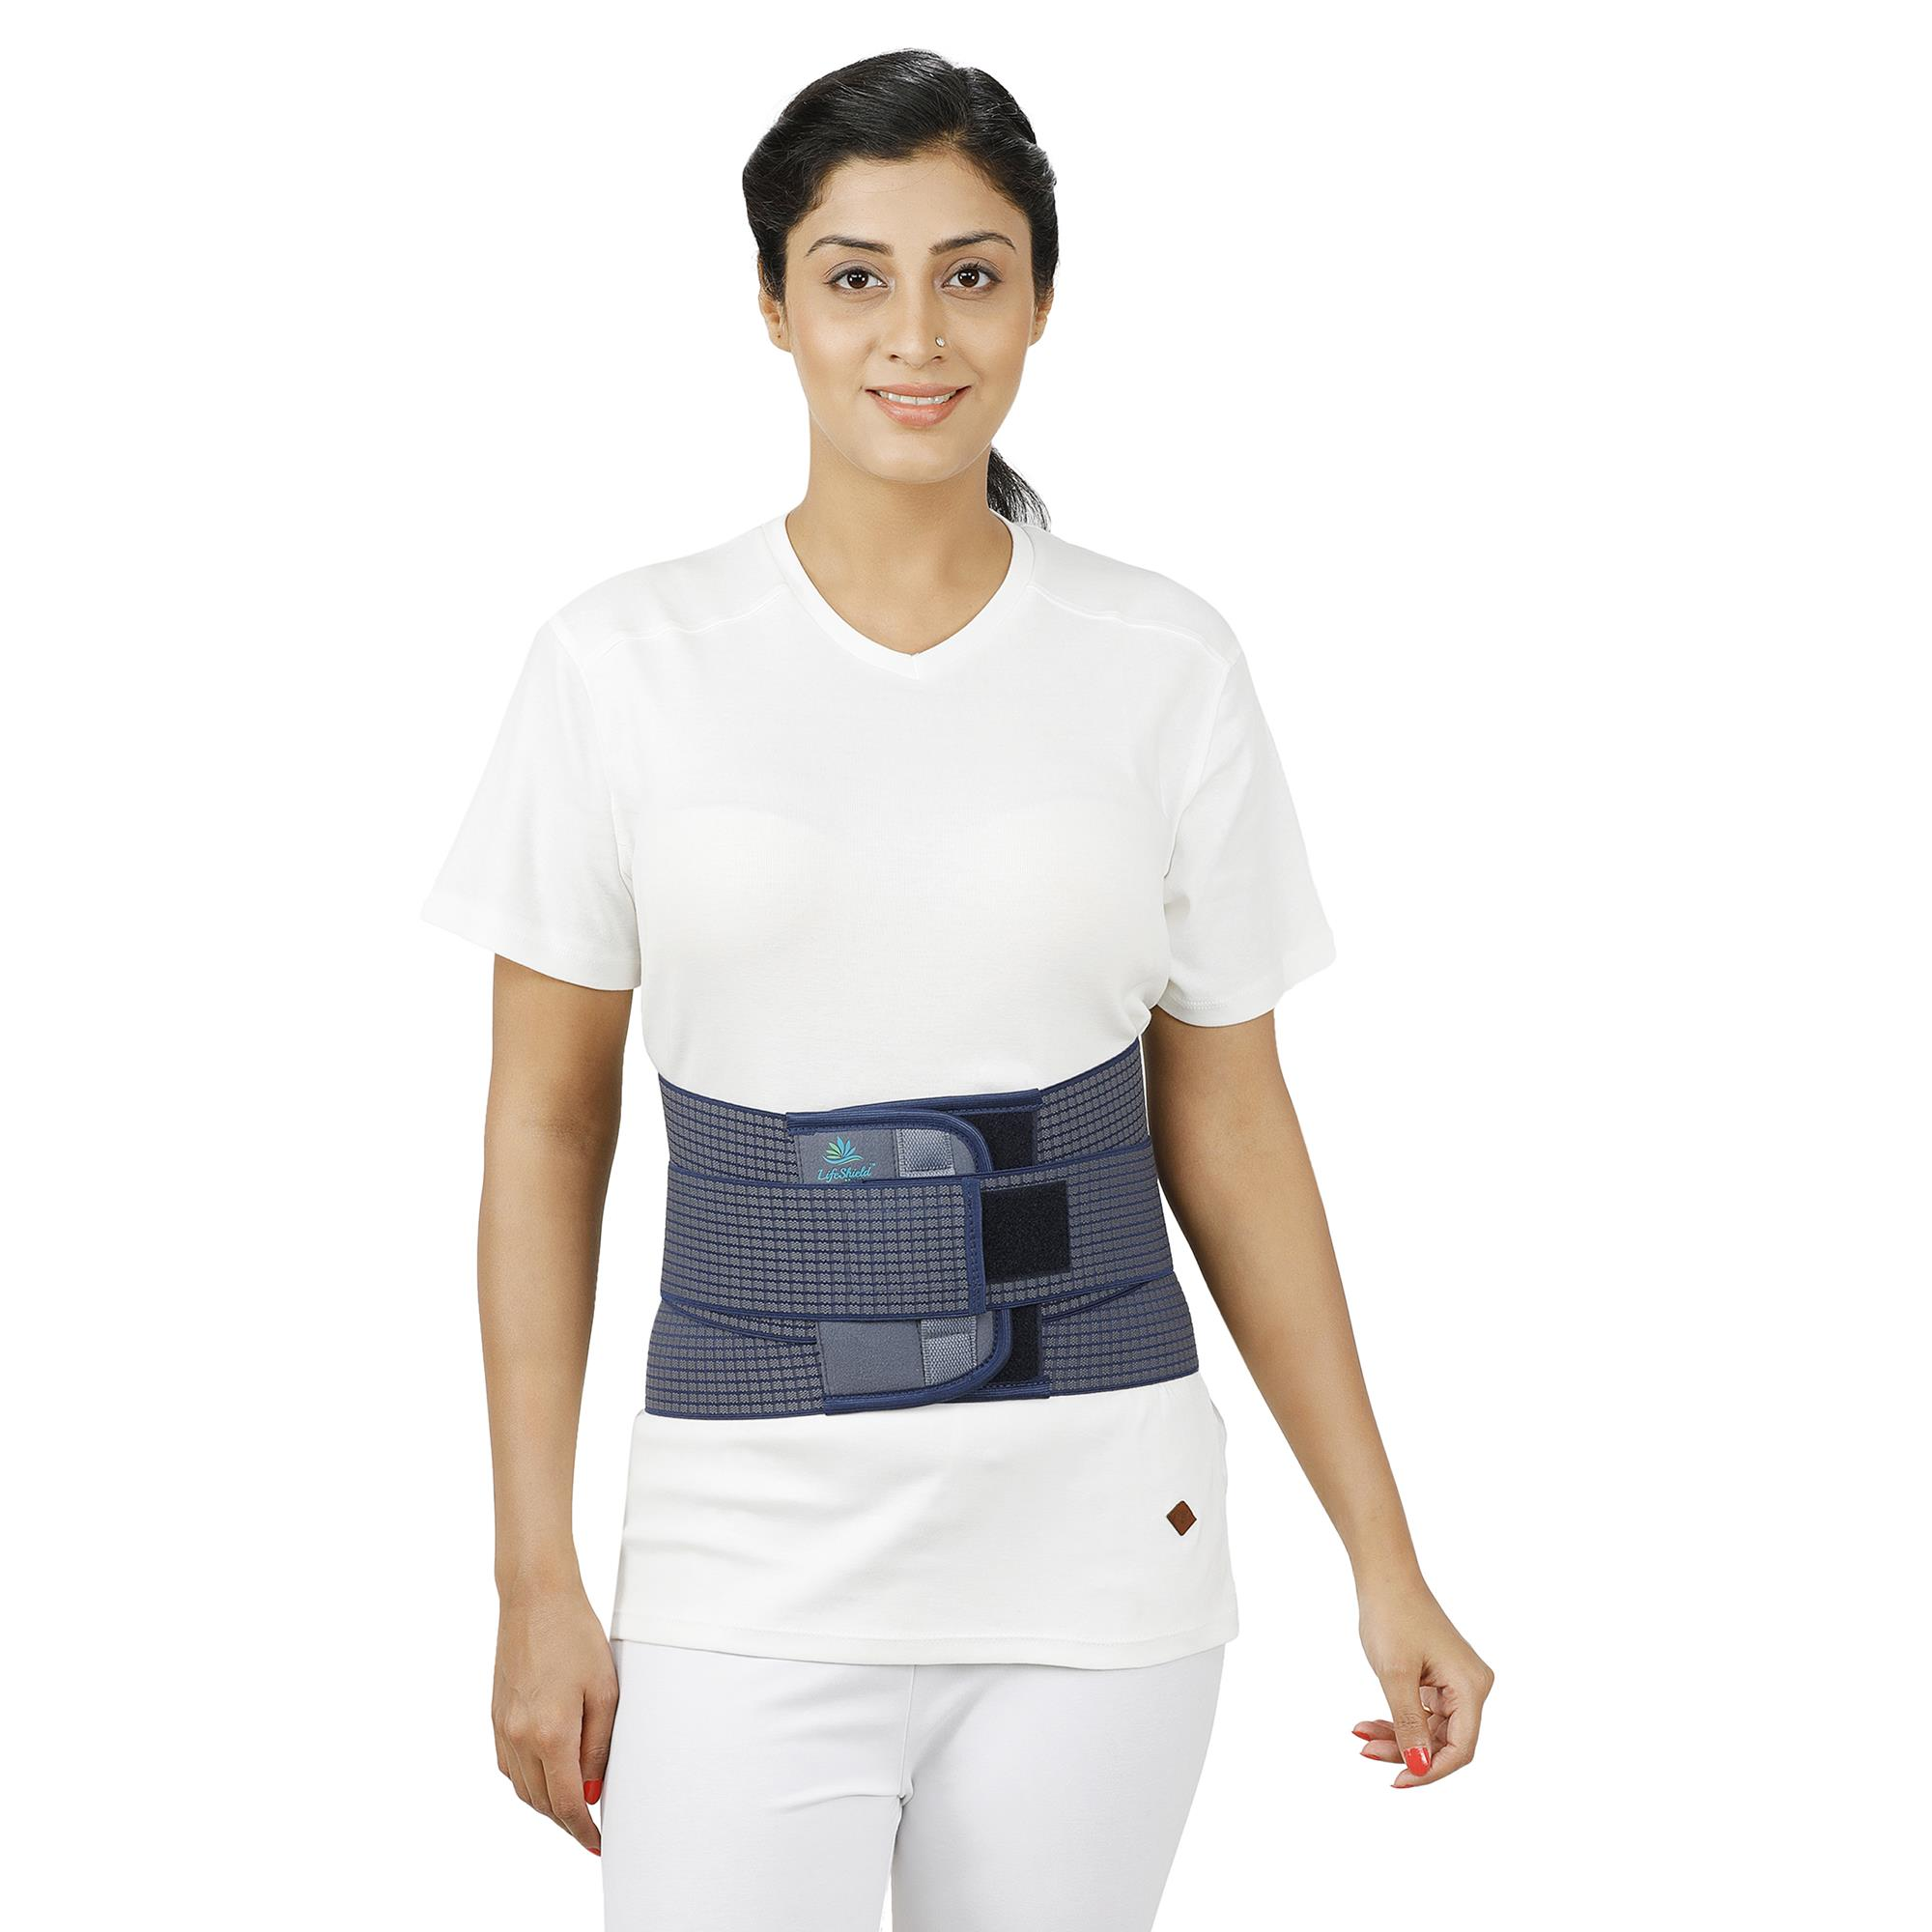 Lifeshield Lumbo Sacral Support With Soft Padded Foam: Provides Back Support To Lumber Region (5X Large)